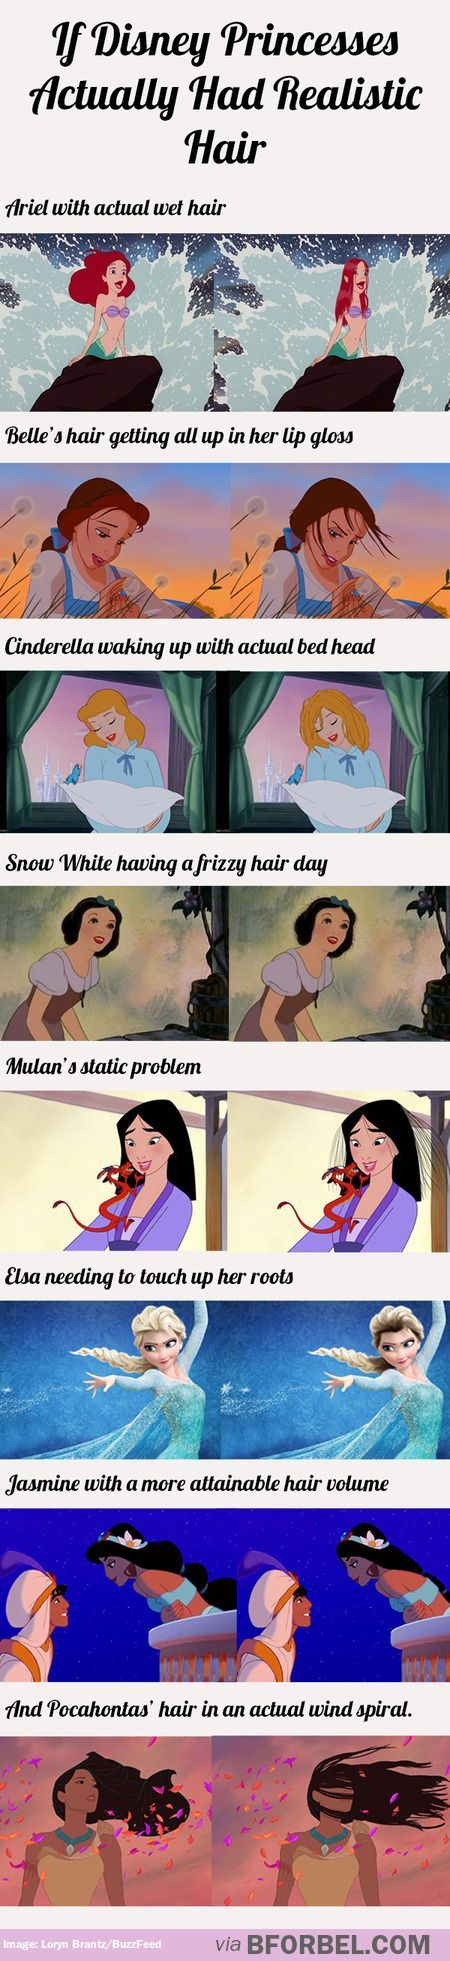 If Disney princesses actually had realistic hair... This is too amazing!: